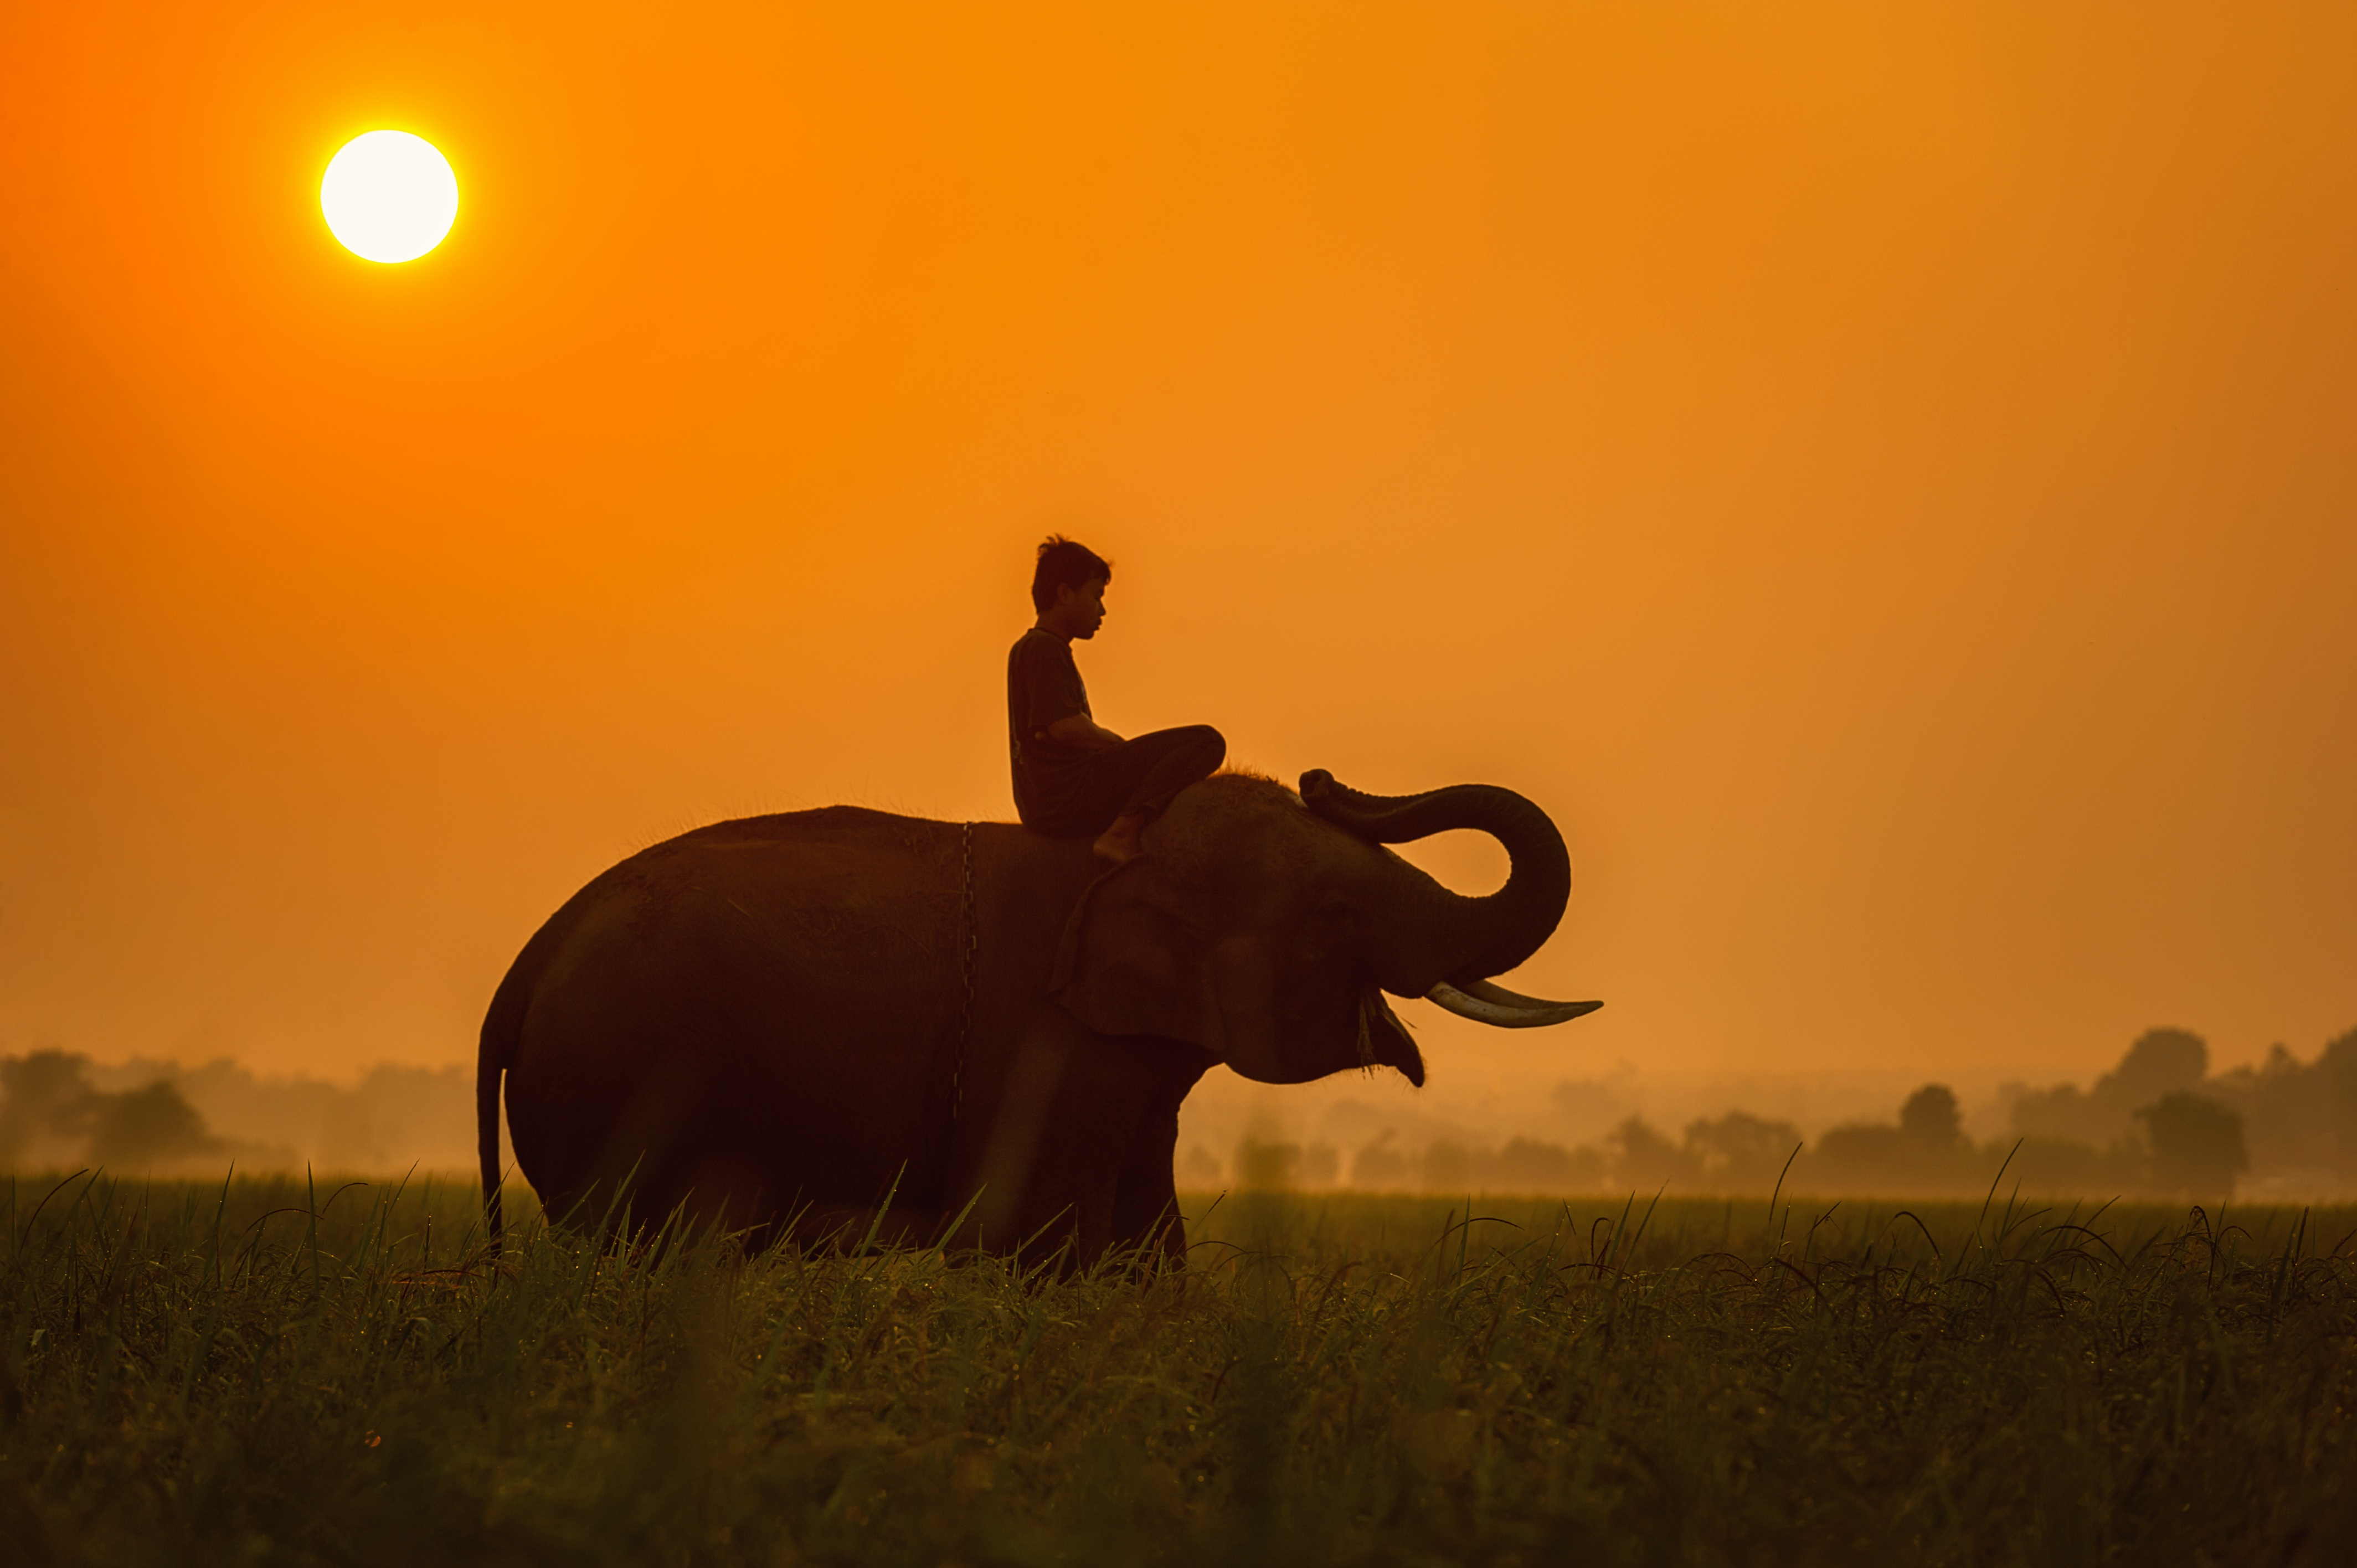 Man riding an Elephant in Cambodia - sasint